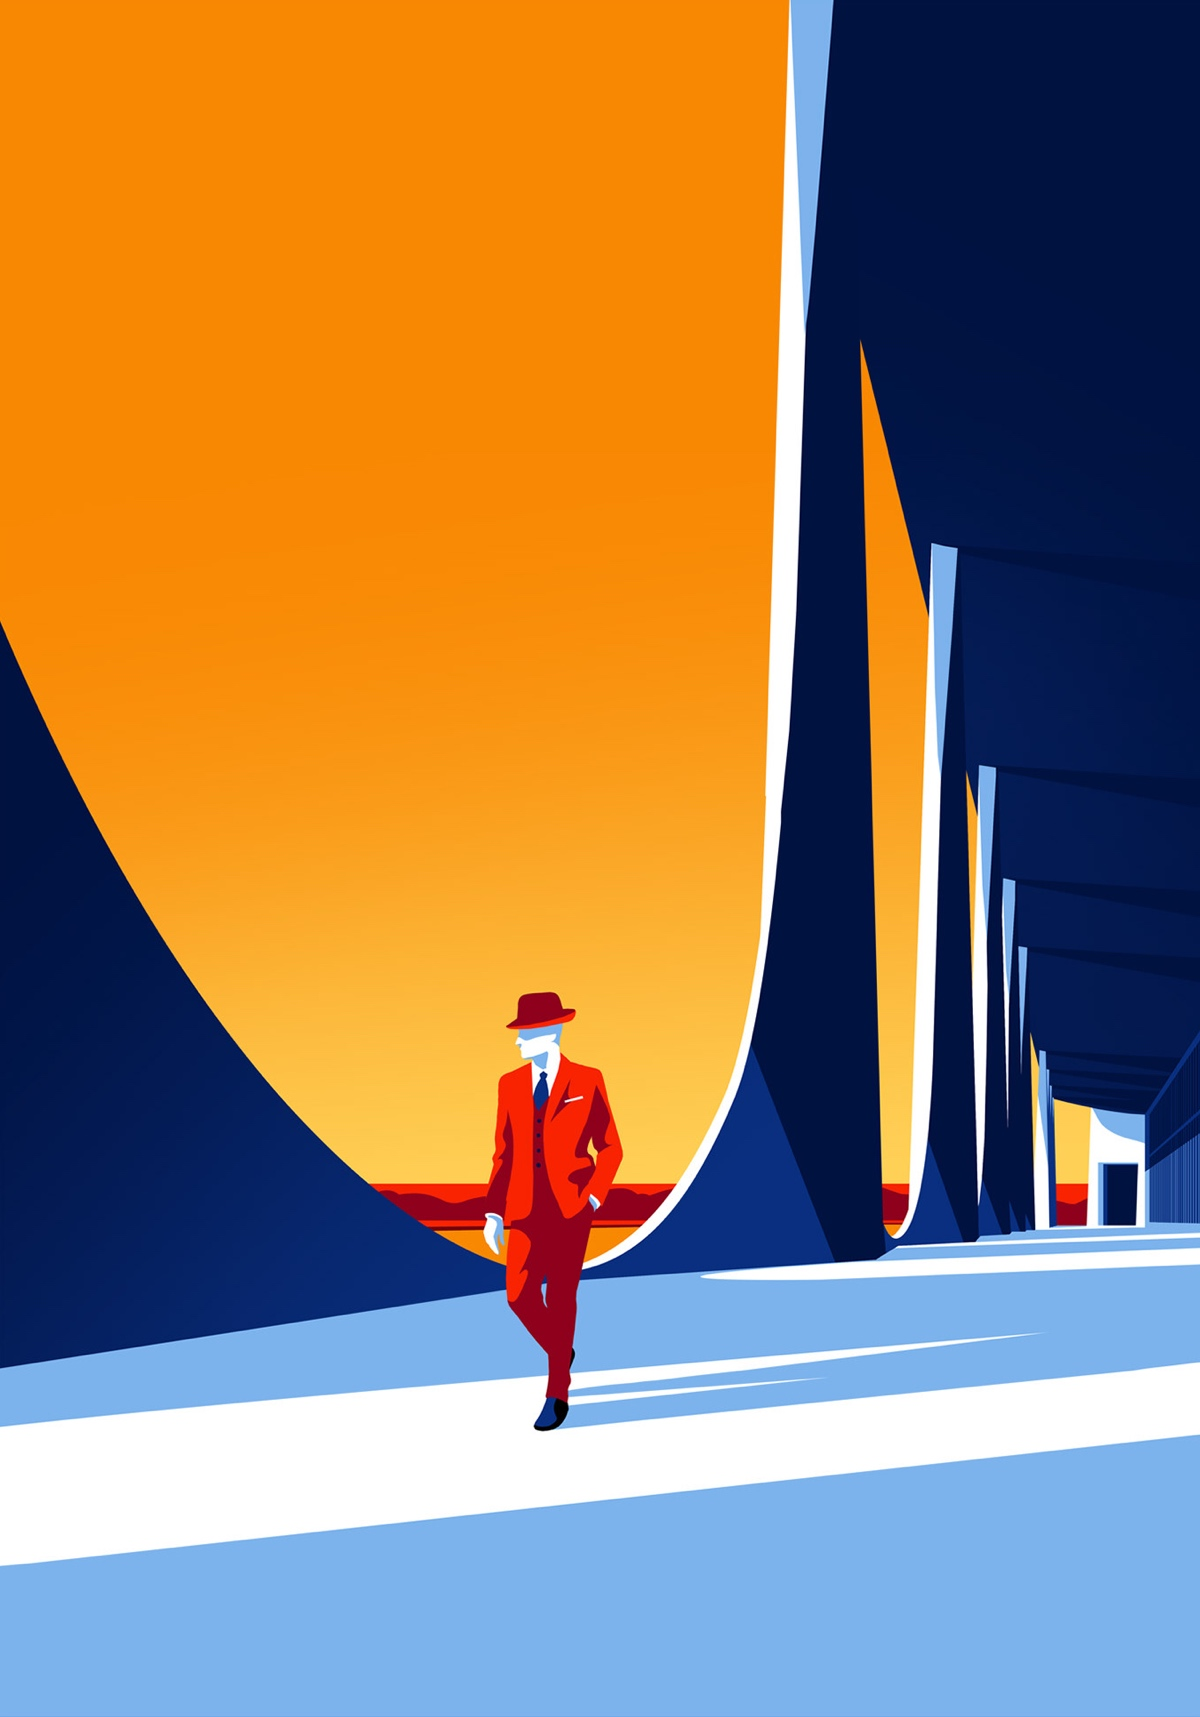 oscar-niemeyer-architecture-illustrations-levente-szabo-11